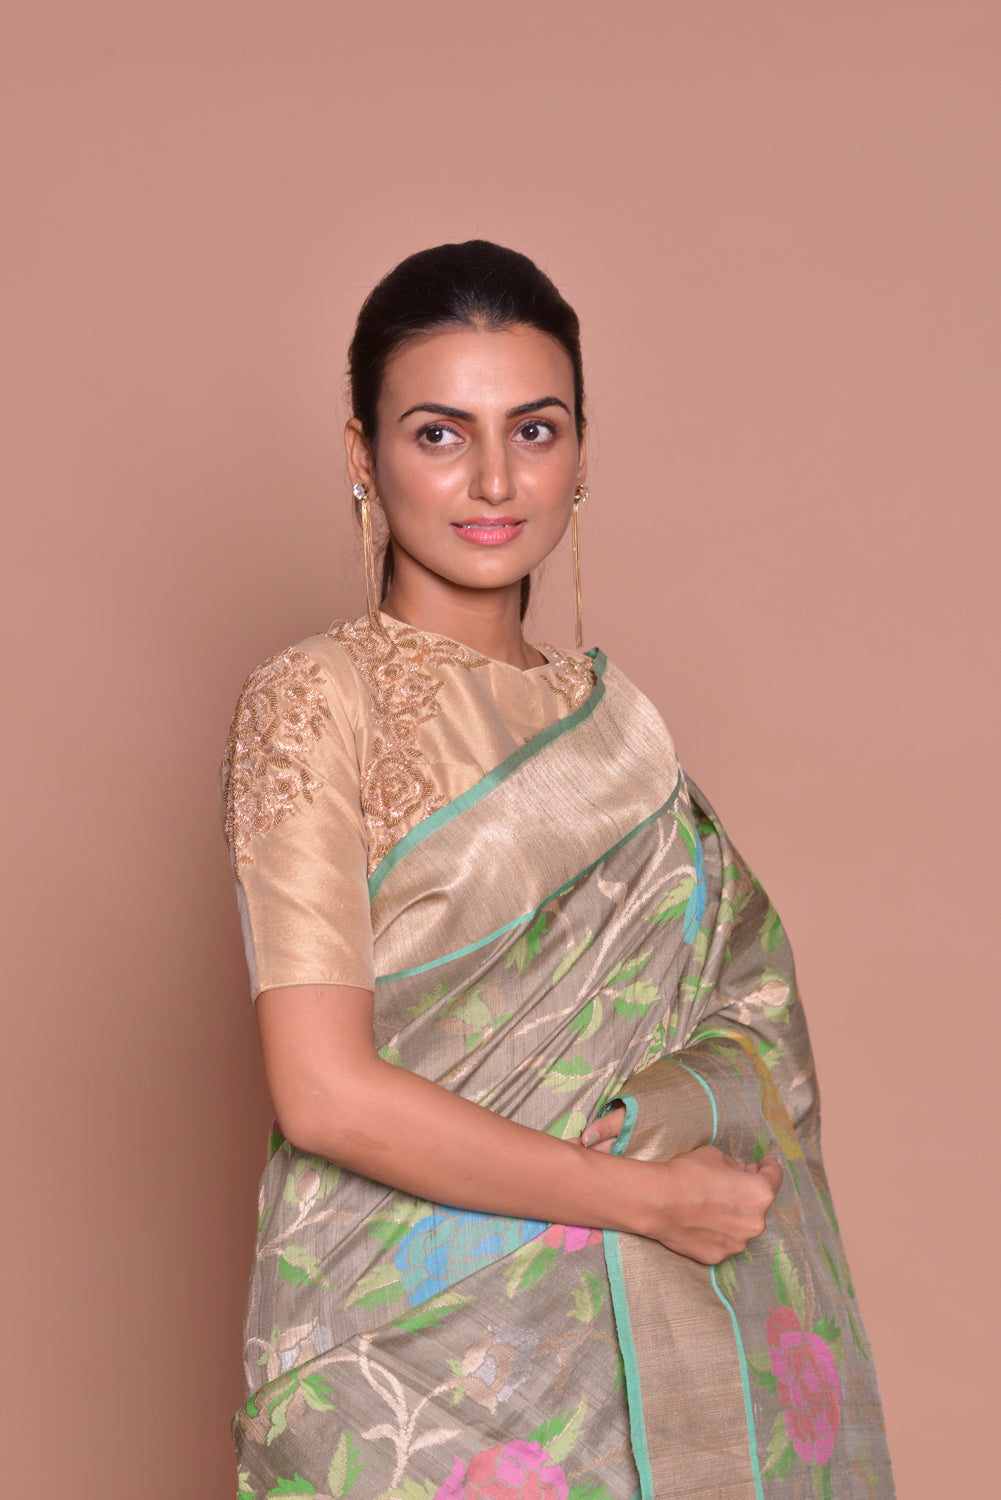 Buy alluring grey floral Banarasi silk saree online in USA with zari border and beige embroidered sari blouse. Set ethnic fashion goals with exquisite designer sarees with blouse, Banarasi sarees, Kanchipuram saris from Pure Elegance Indian luxury clothing store in USA.-closeup